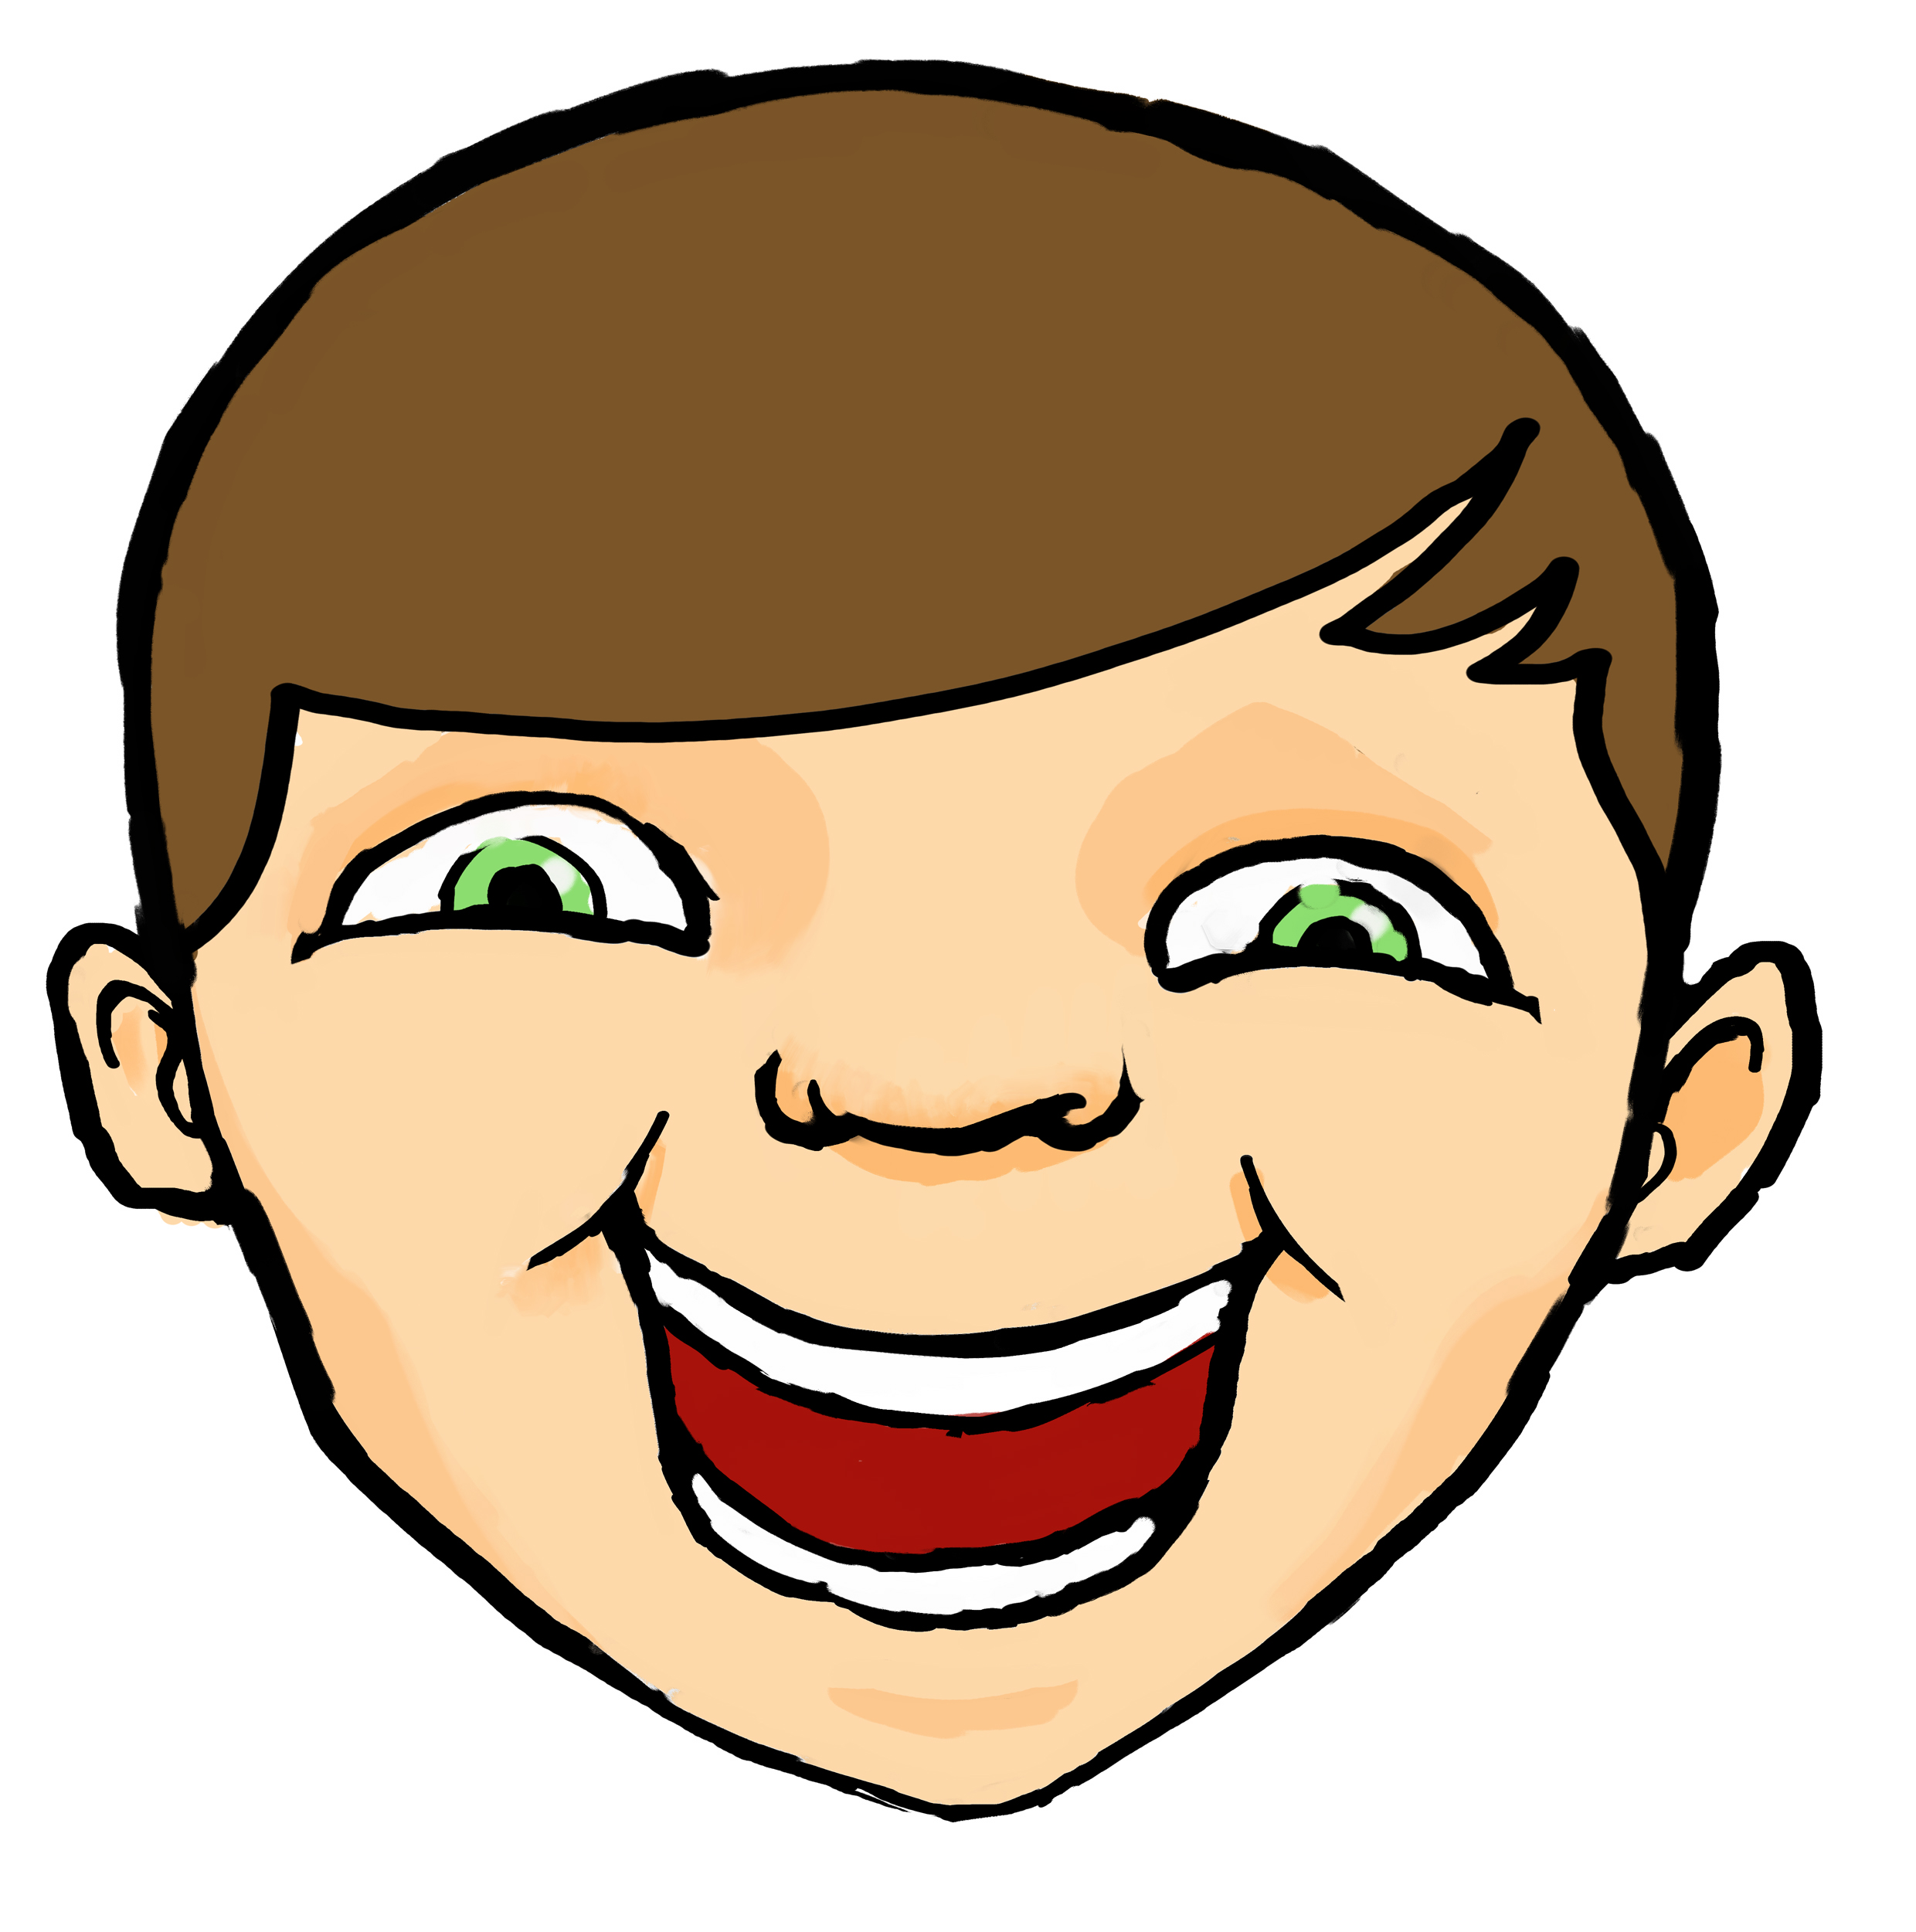 Laughing Smiley Clip Art - ClipArt - 707.1KB